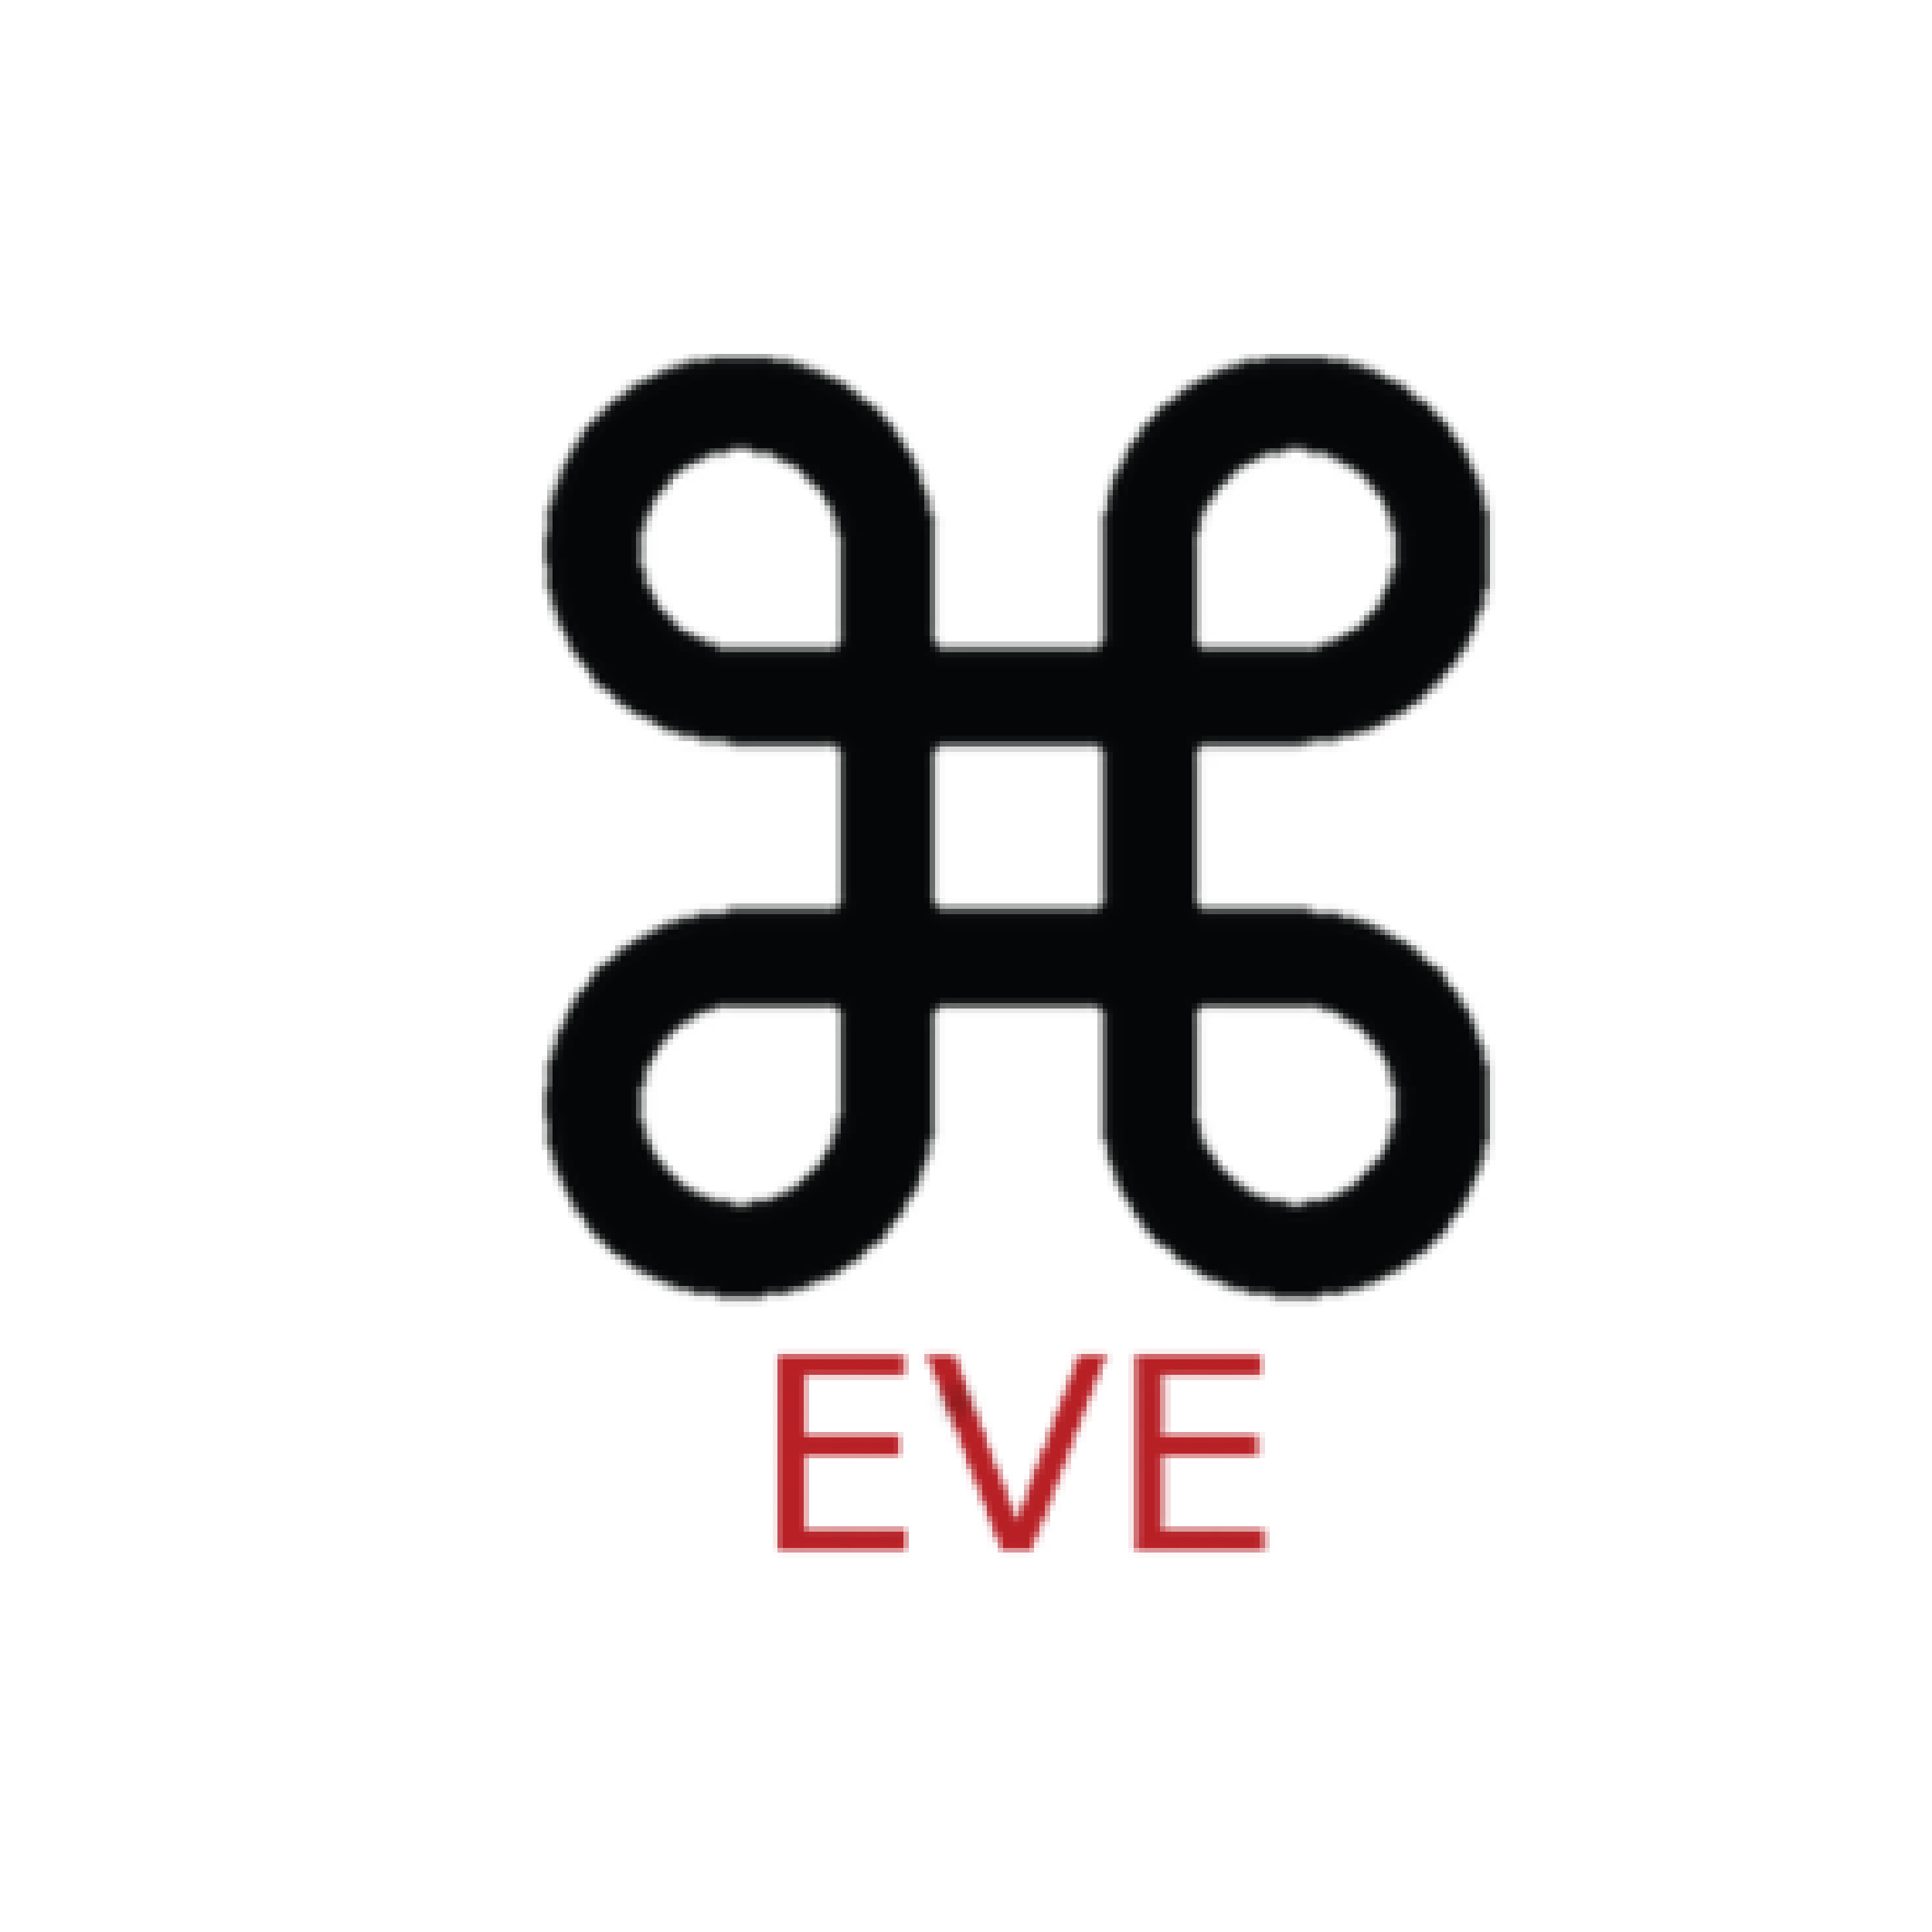 eve-shortcuts-app